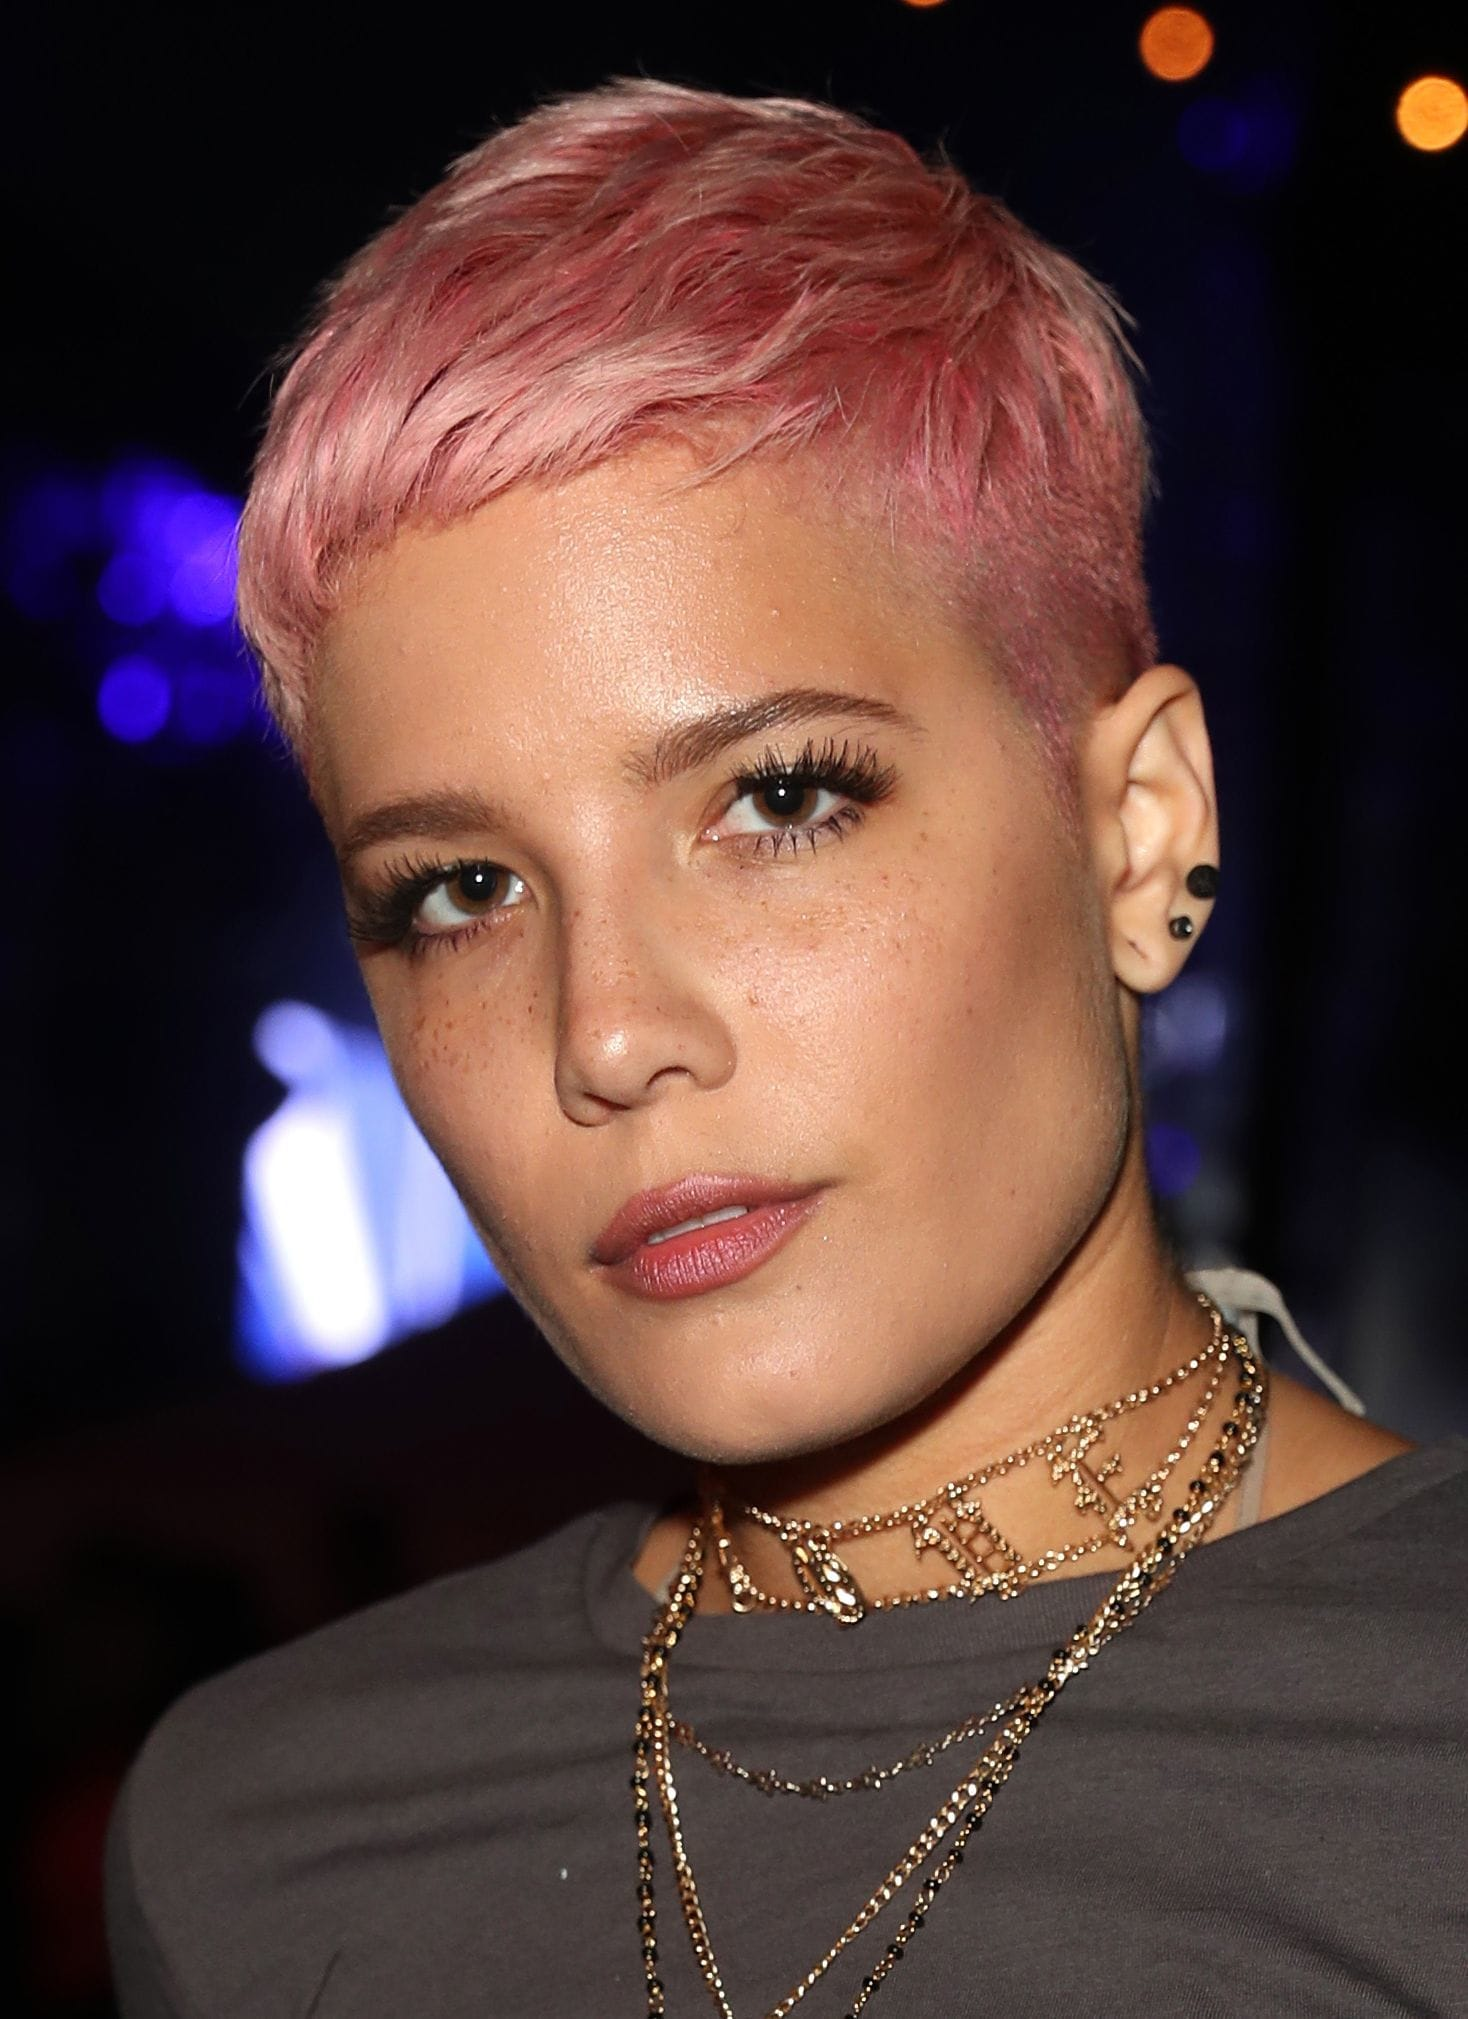 Should I get a pixie cut?: Close-up photo of Halsey with a short pink pixie haircut